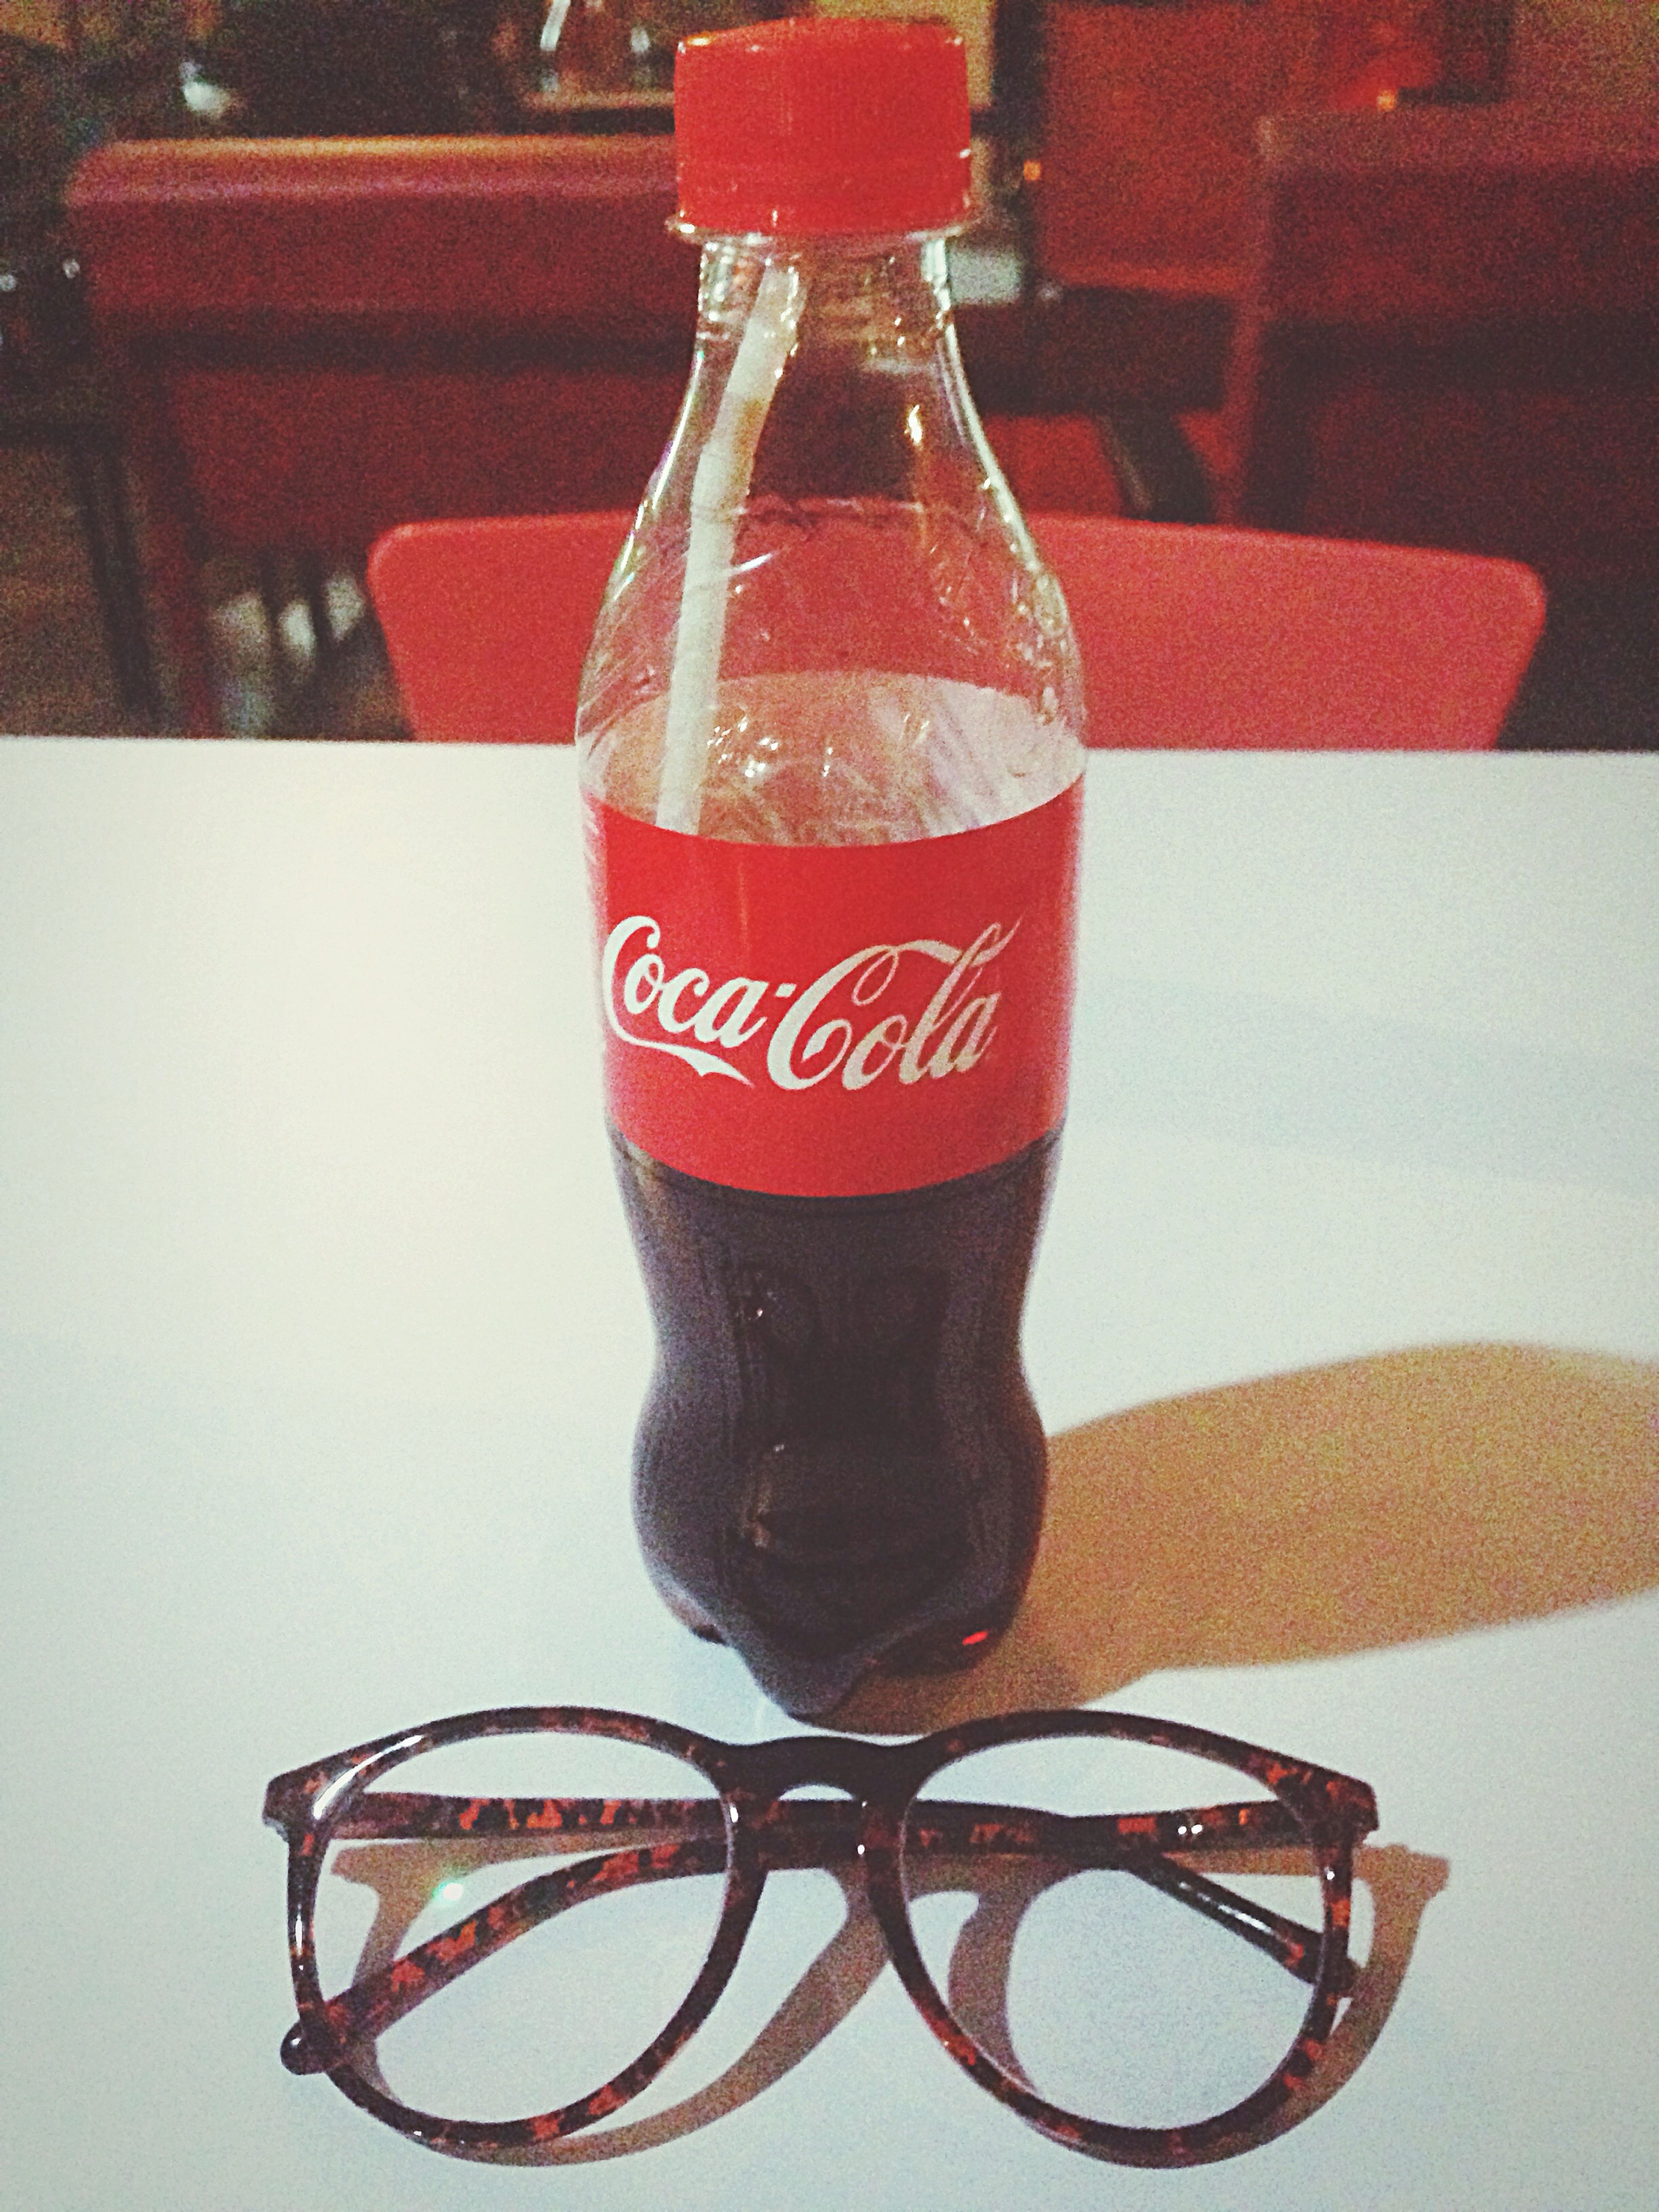 Coca Cola Cocacola Table Indoors  Drink Refreshment Freshness EyeEmNewHere The Architect - 2017 EyeEm Awards